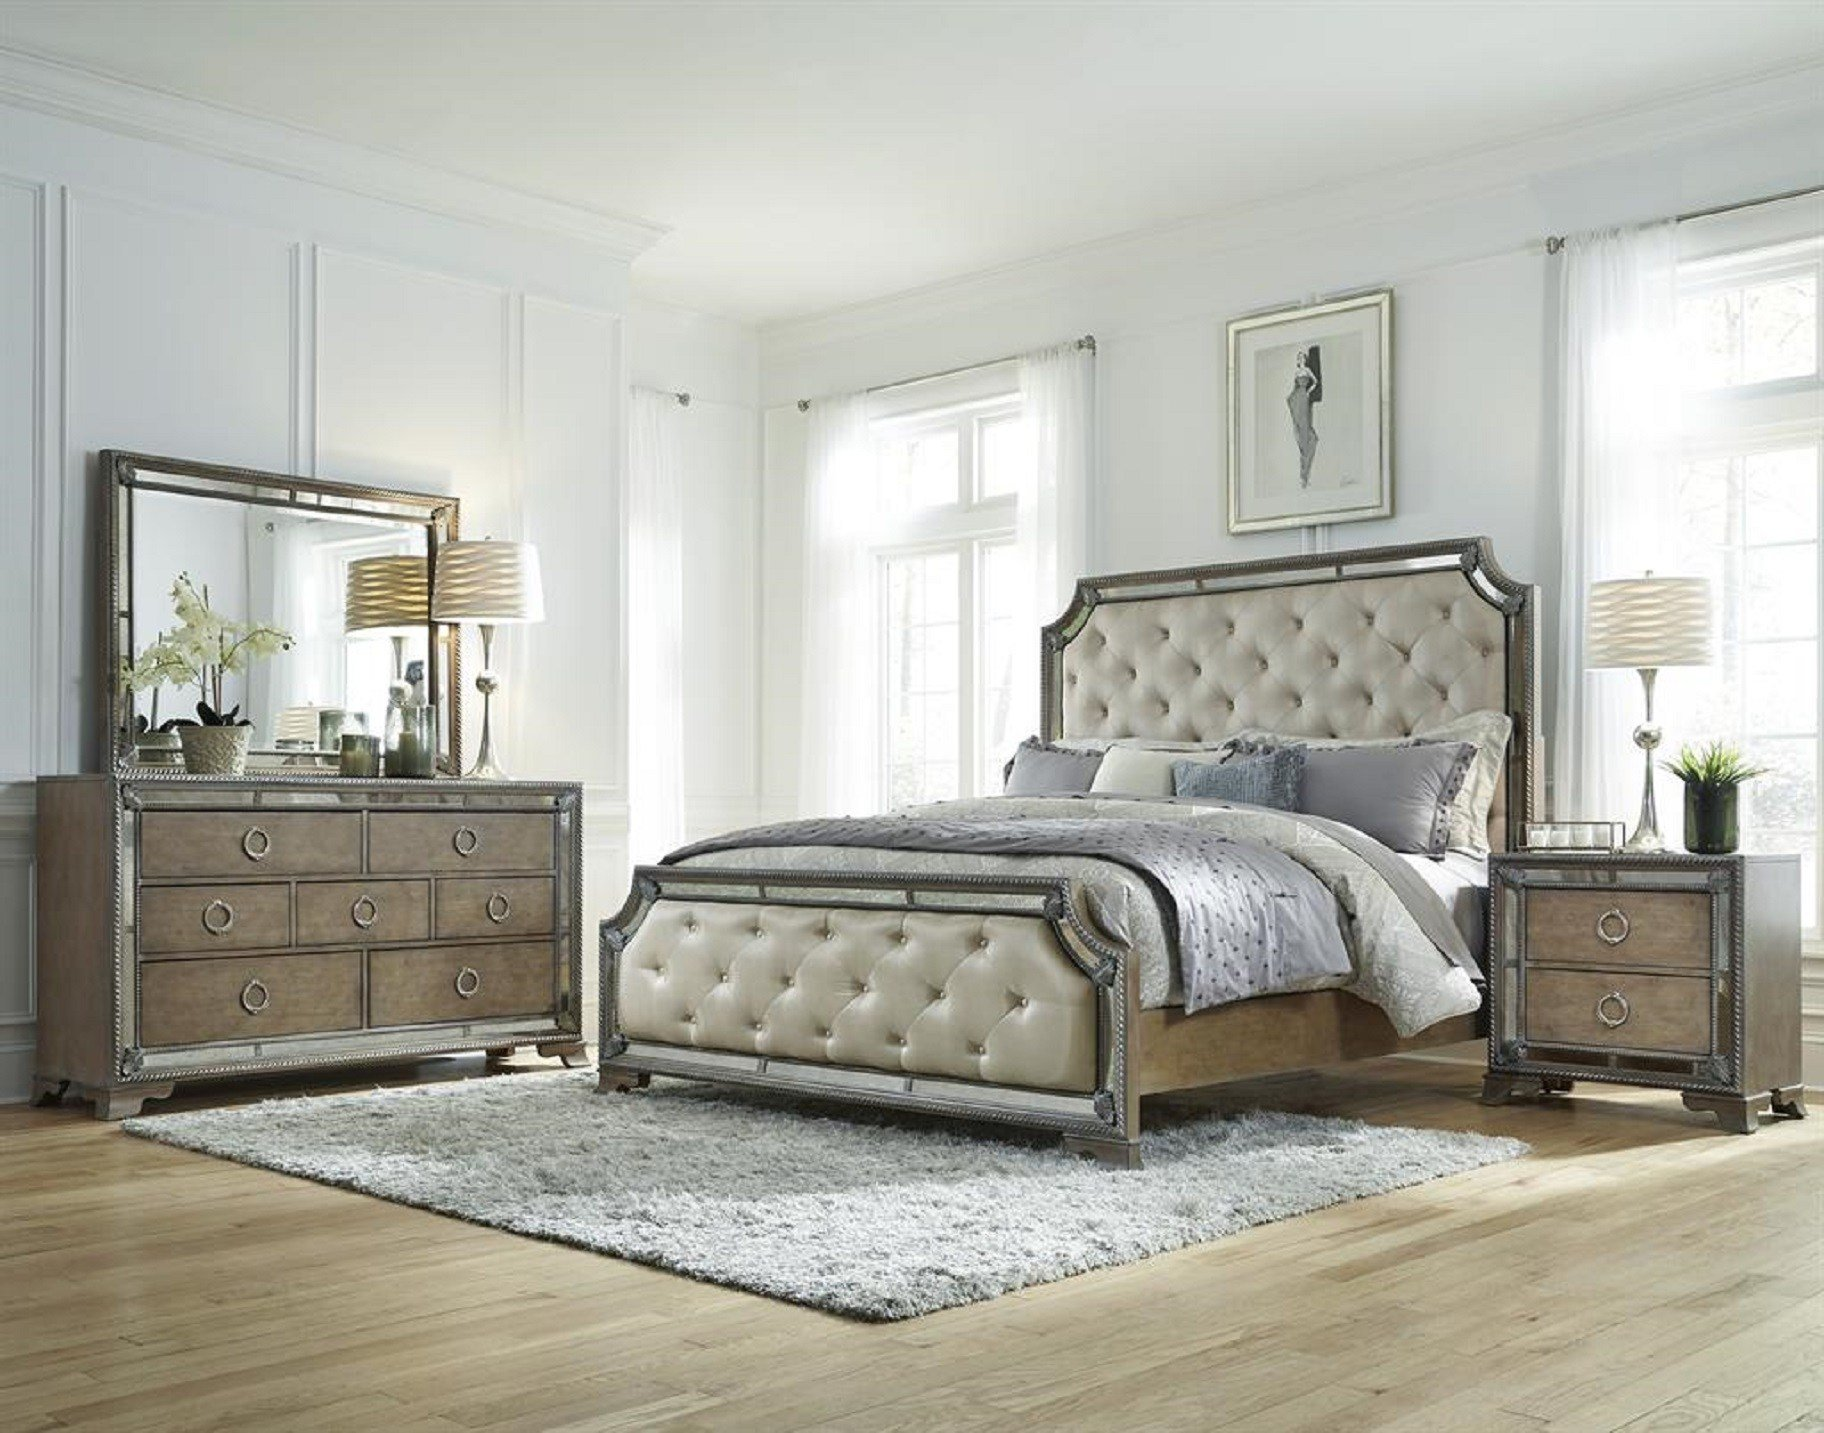 Best Bedroom Sets With Mirror Headboard Pulaski Furniture With Pictures